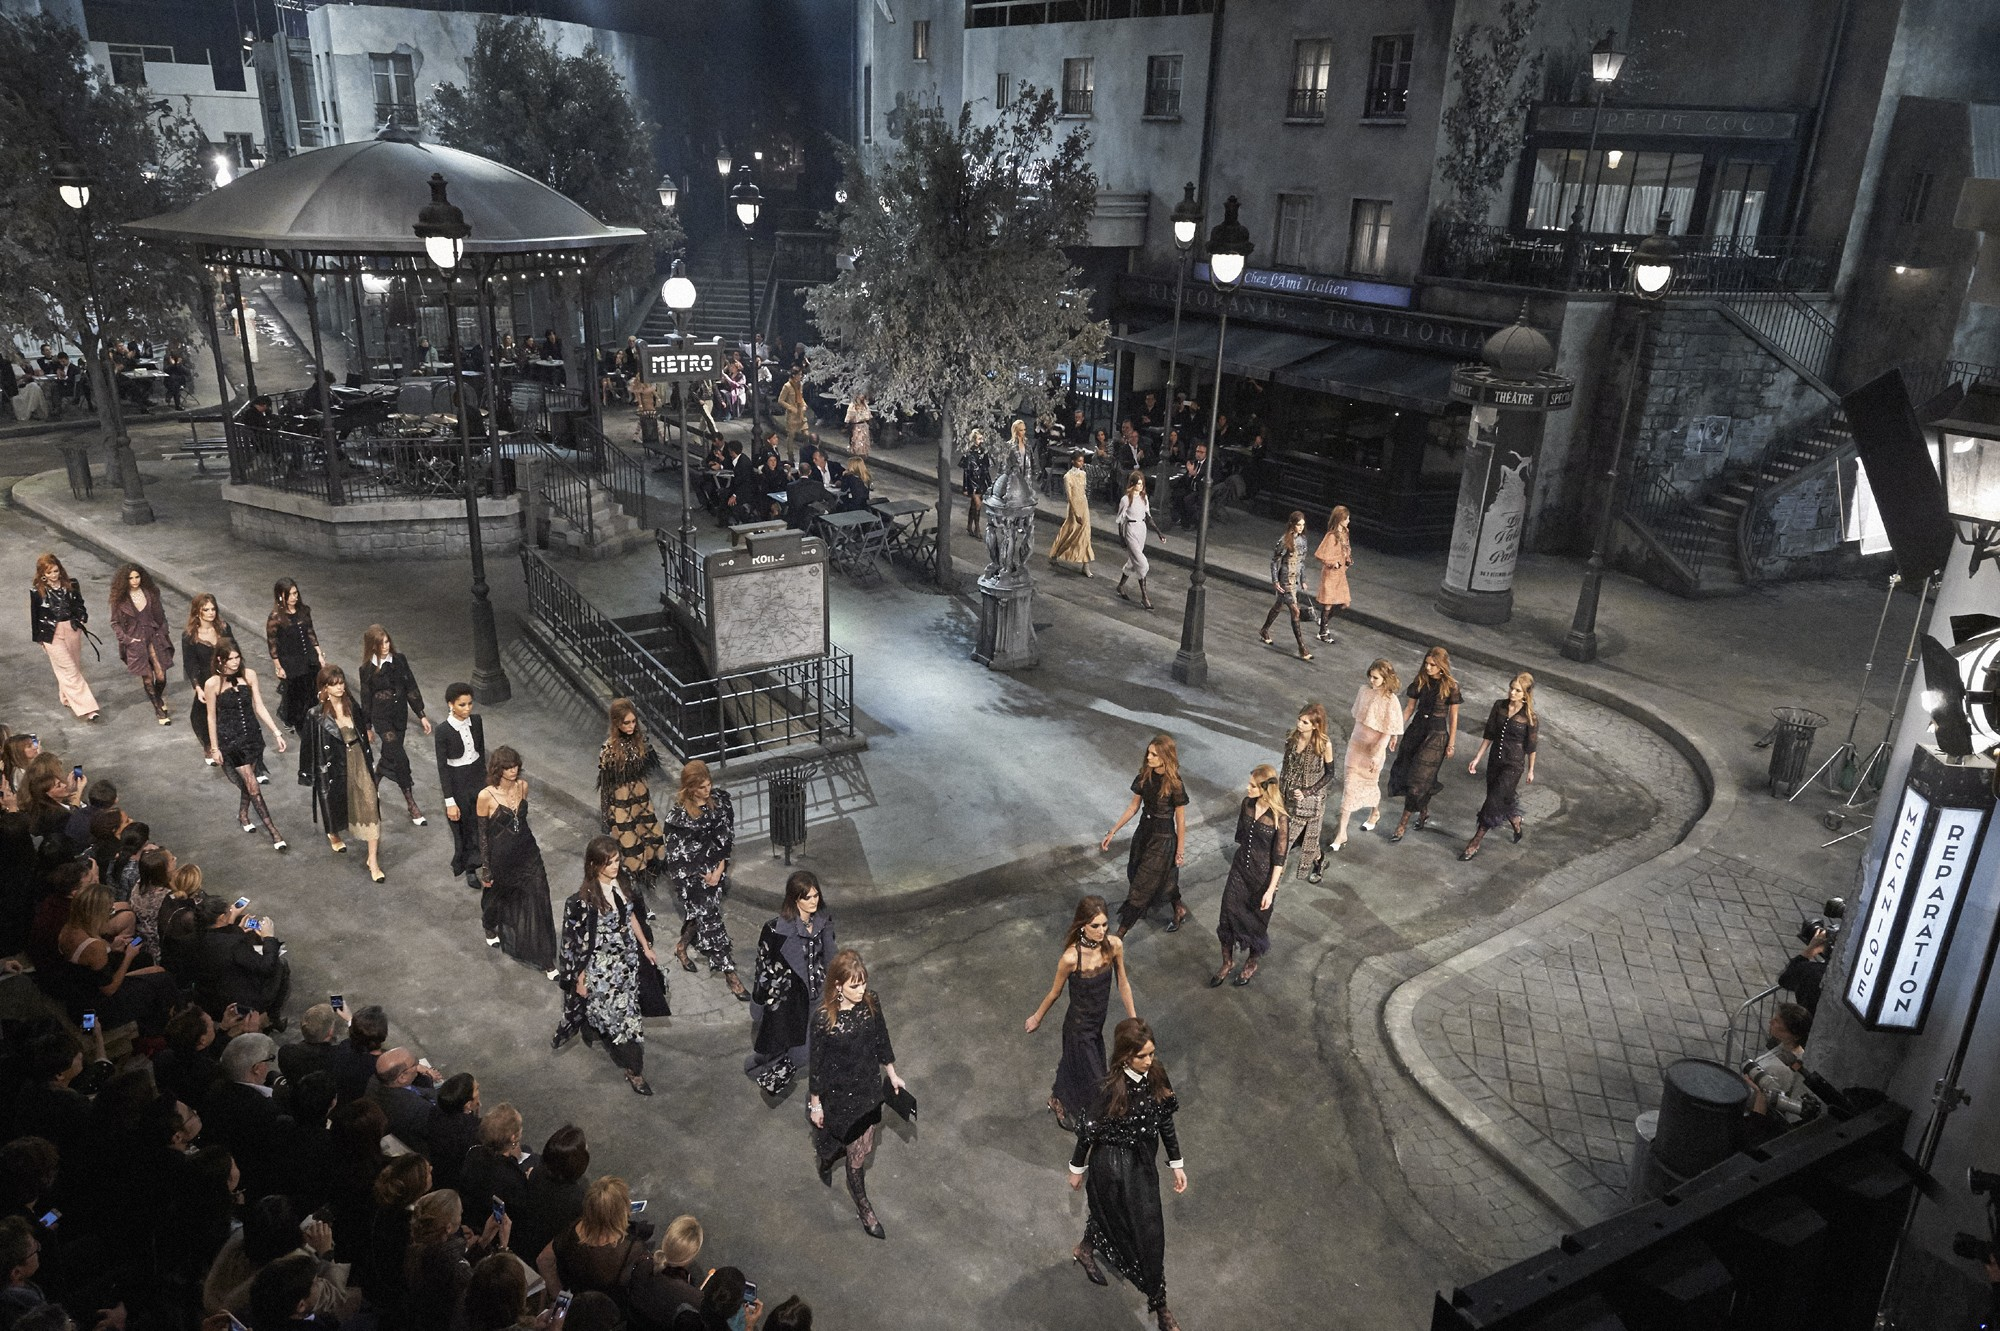 A view of the set at Chanel's Métiers d'art Paris in Rome show at Theatre No 5 - transforming Rome's Cinecittà film studios into a Parisian square  (Foto: Olivier Saillant)